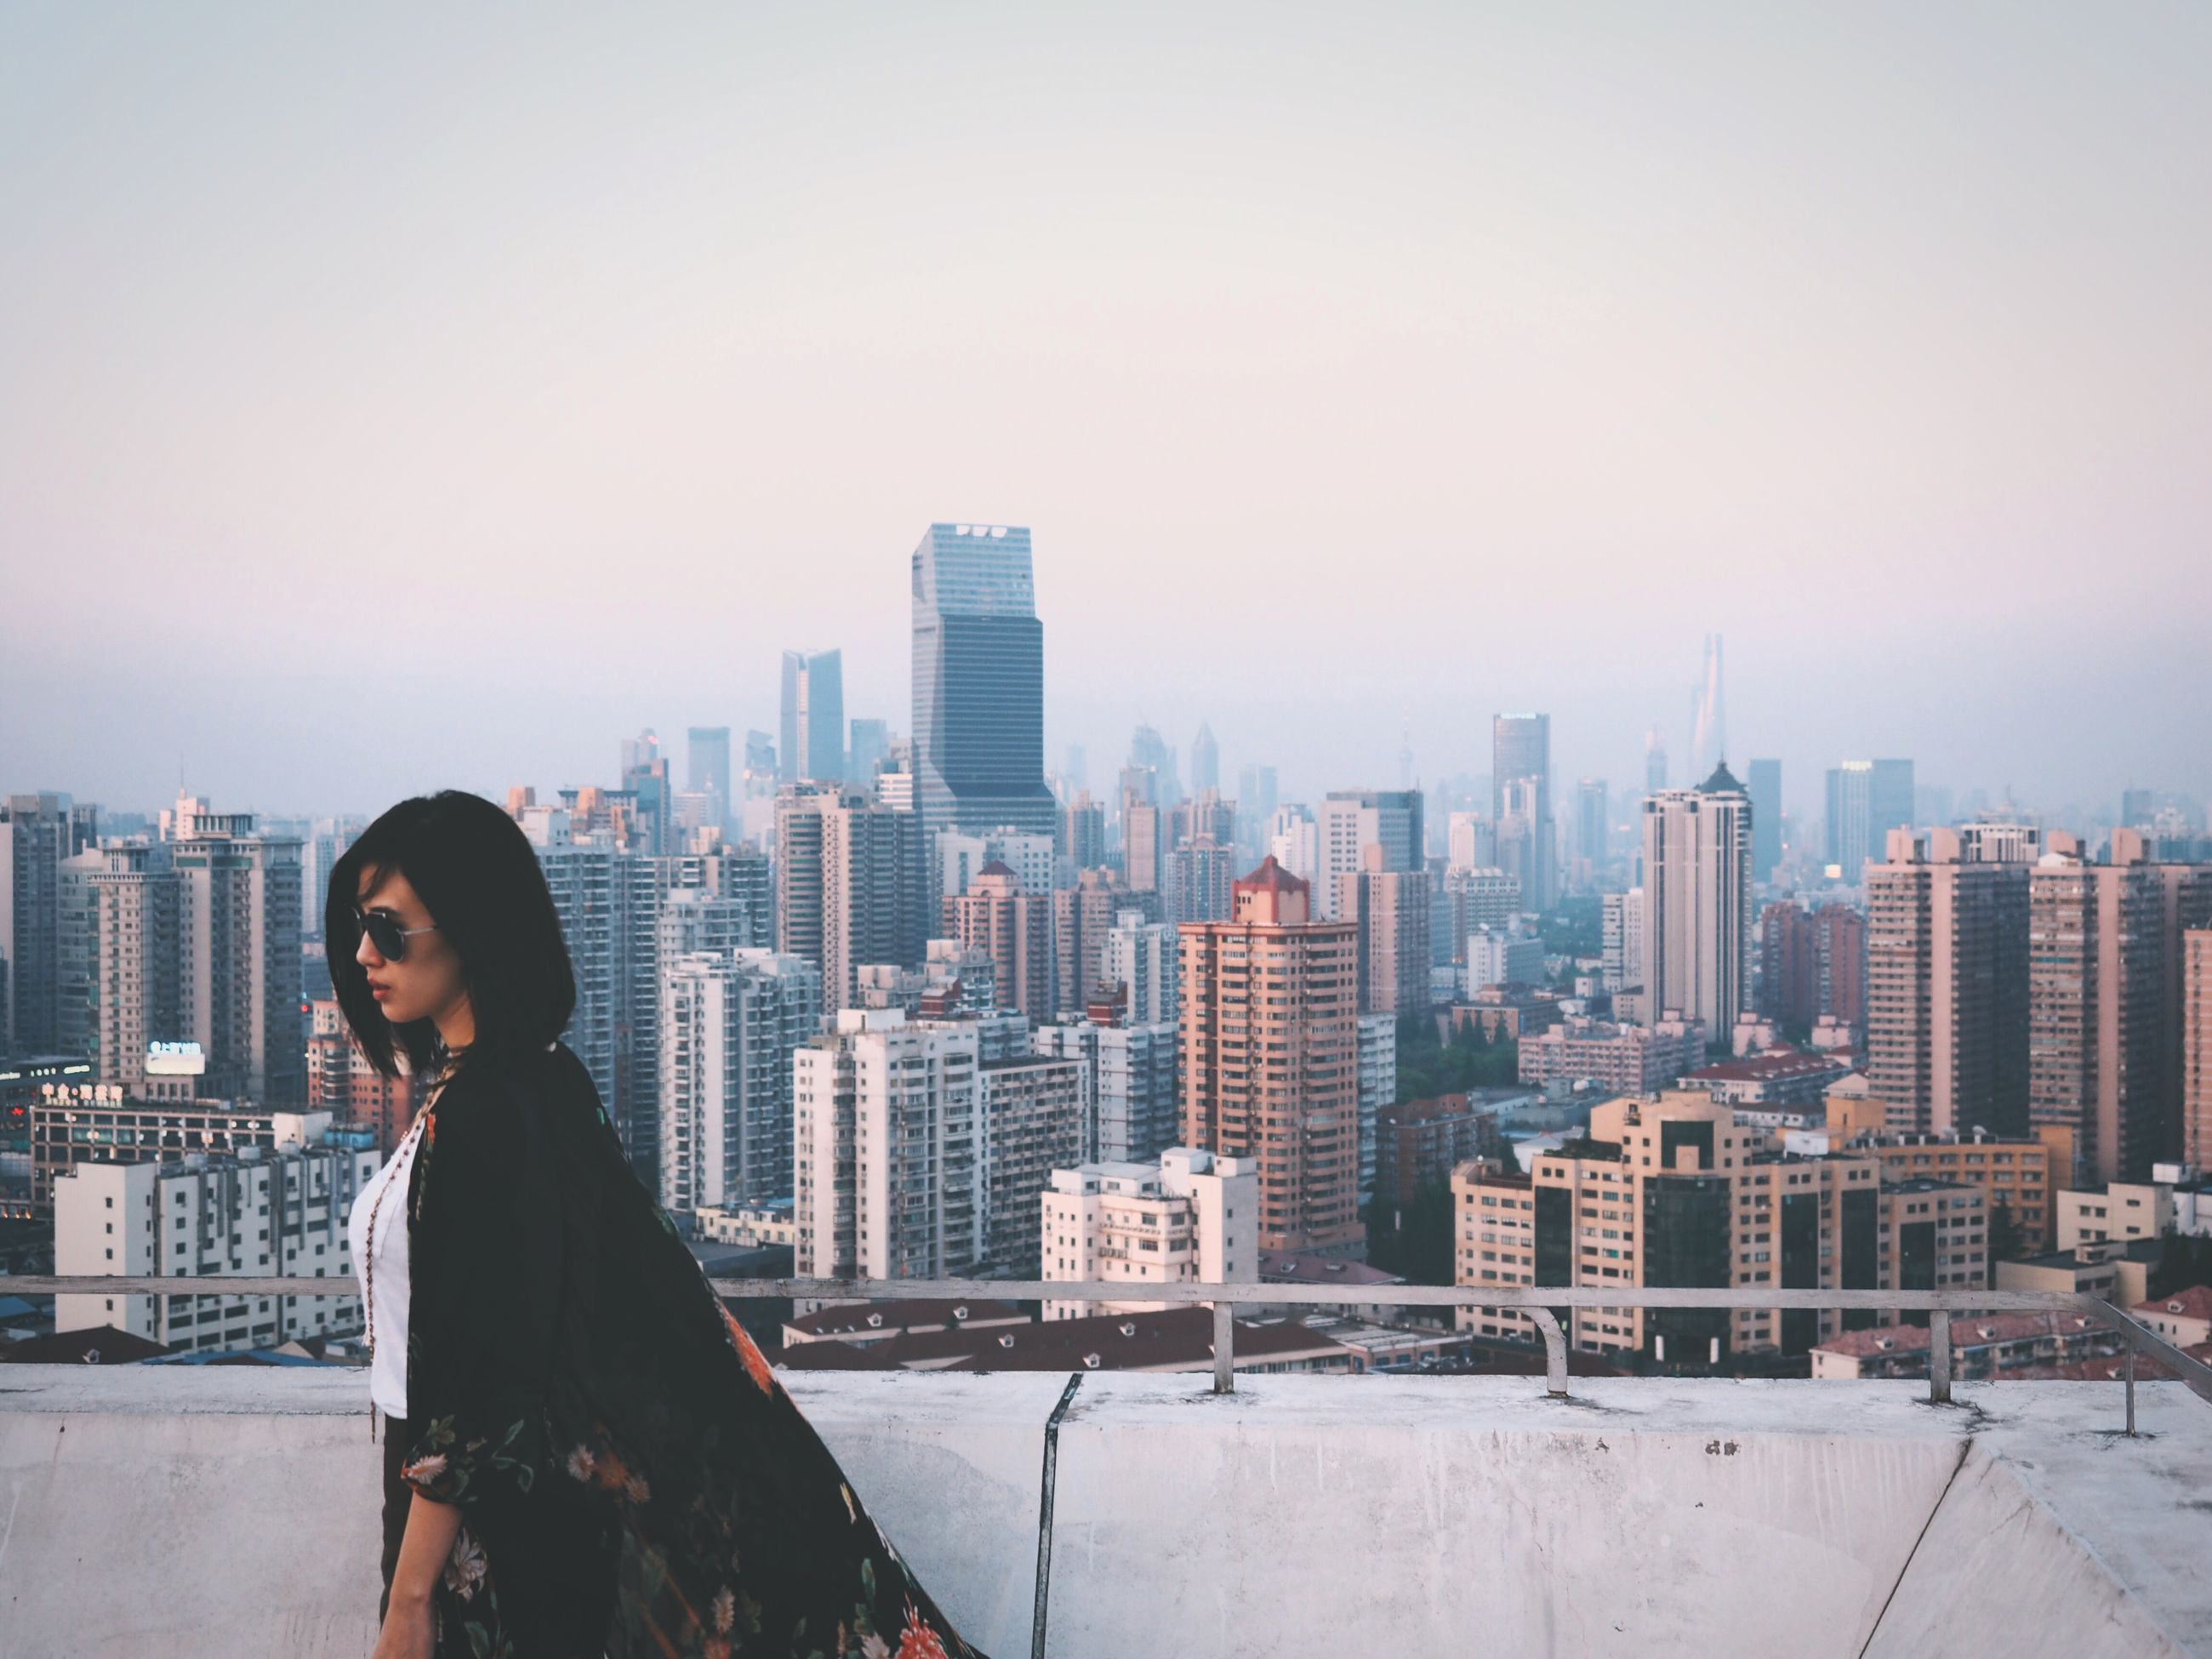 building exterior, city, architecture, built structure, cityscape, lifestyles, skyscraper, leisure activity, standing, clear sky, young adult, casual clothing, city life, looking at view, tower, tall - high, sky, waist up